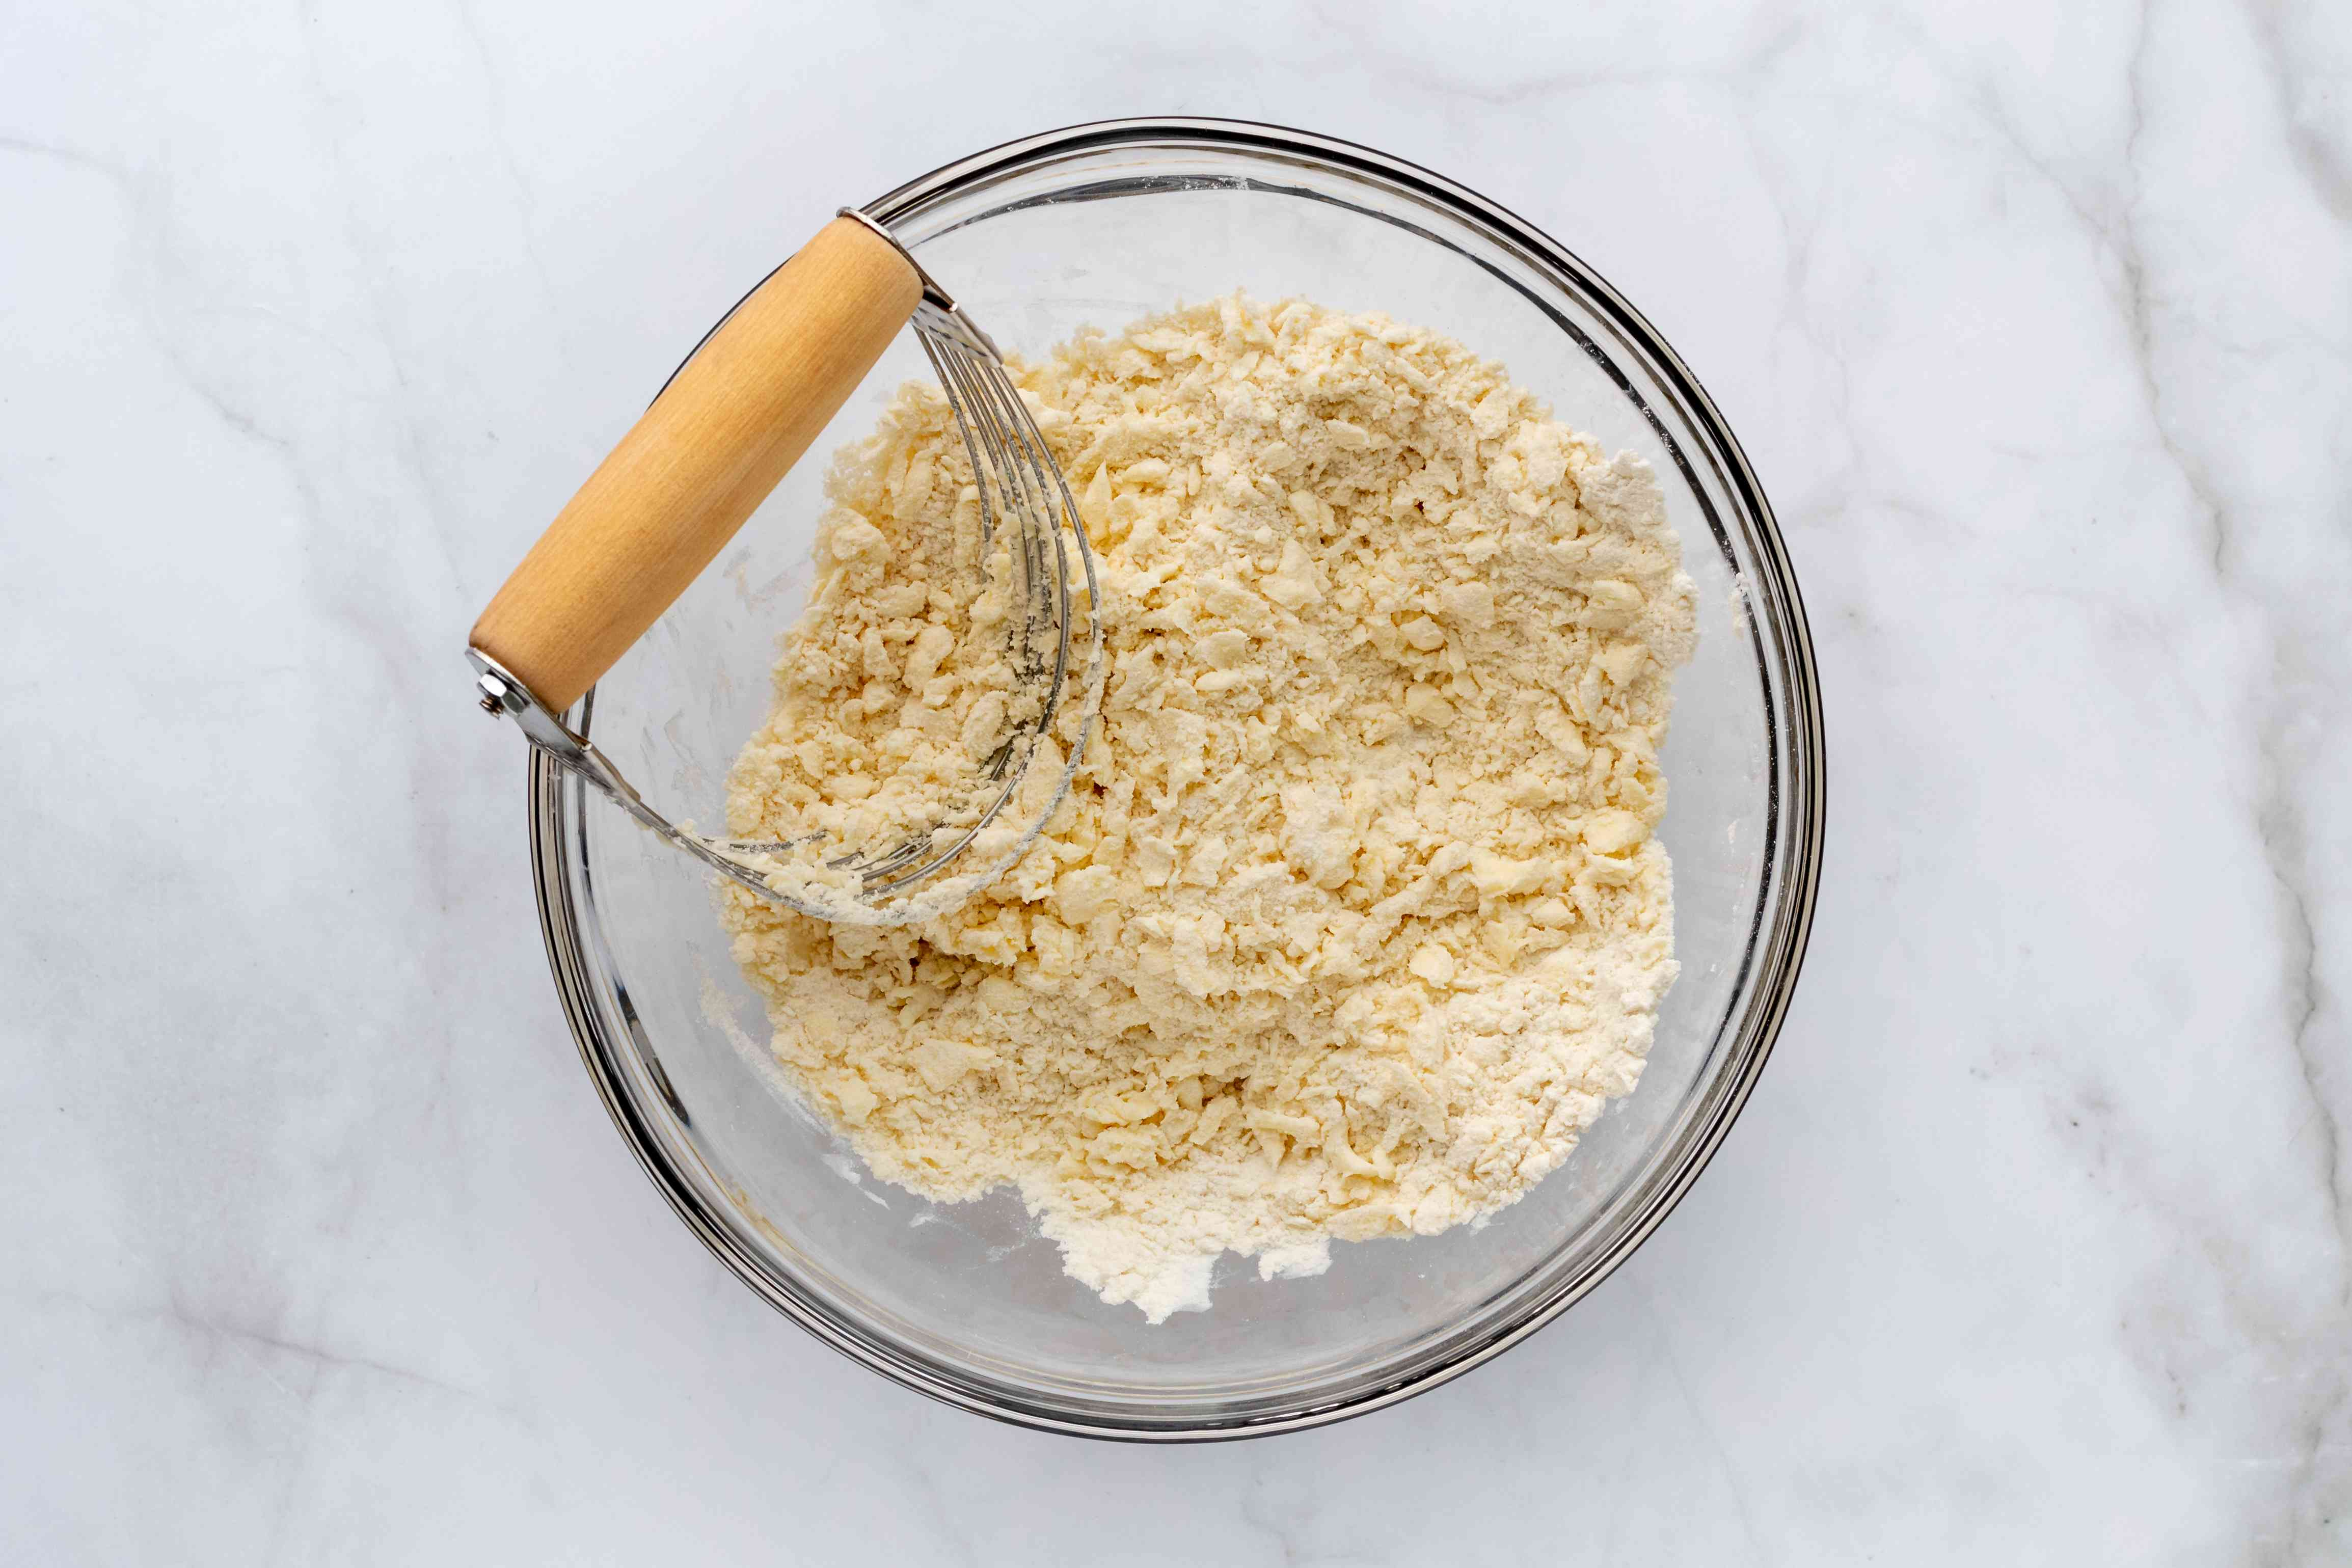 butter and flour mixed with a pastry blender